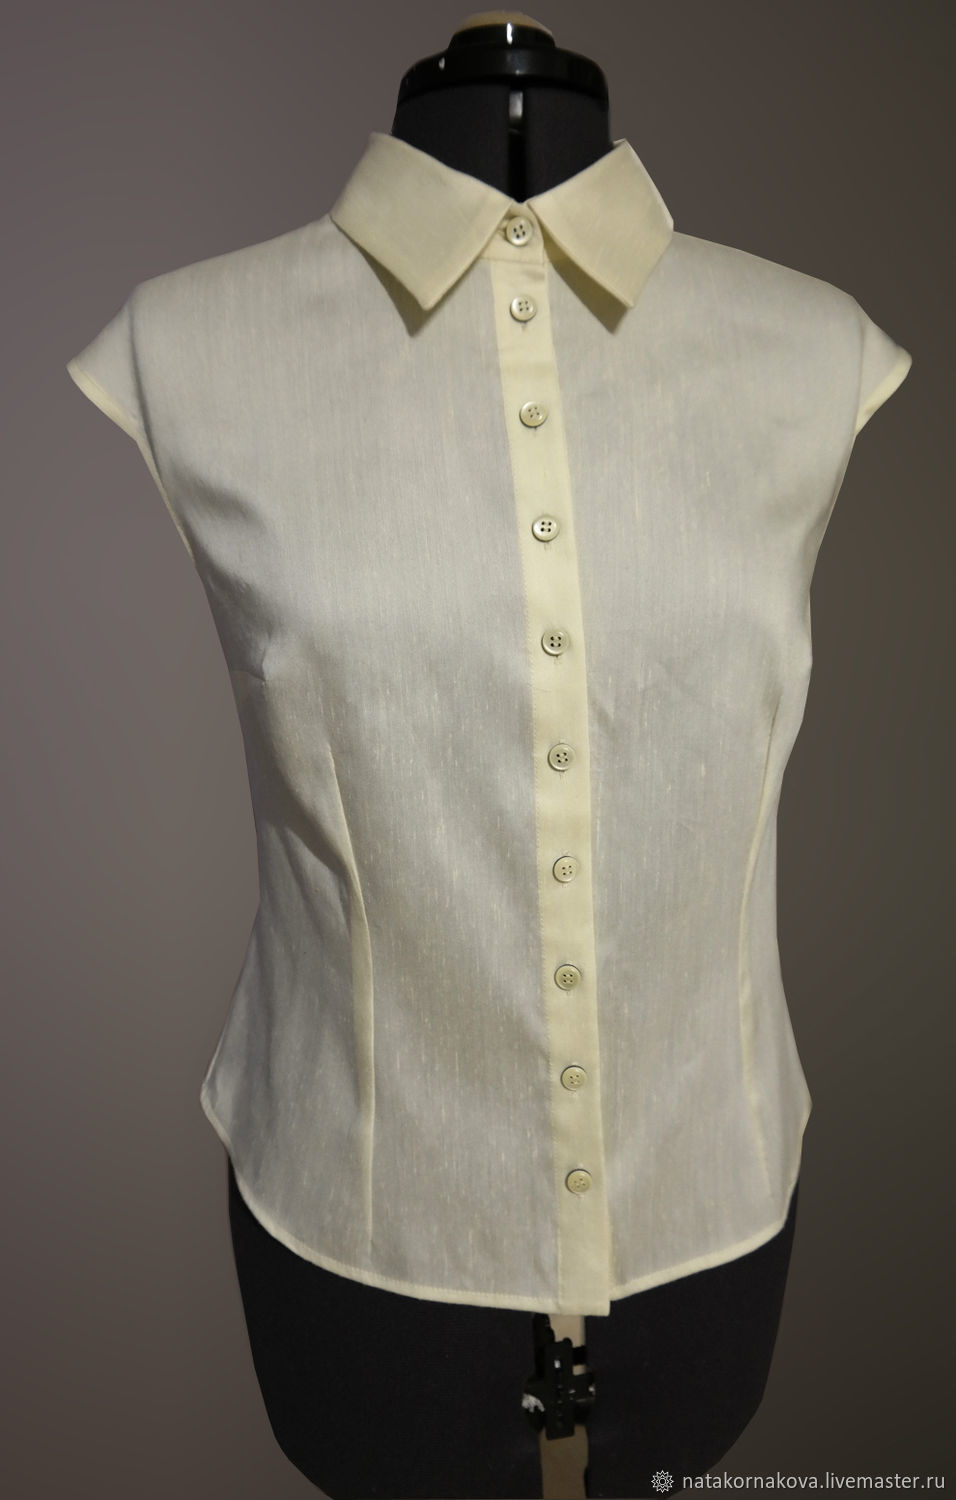 blouse made of natural silk, Blouses, Moscow,  Фото №1